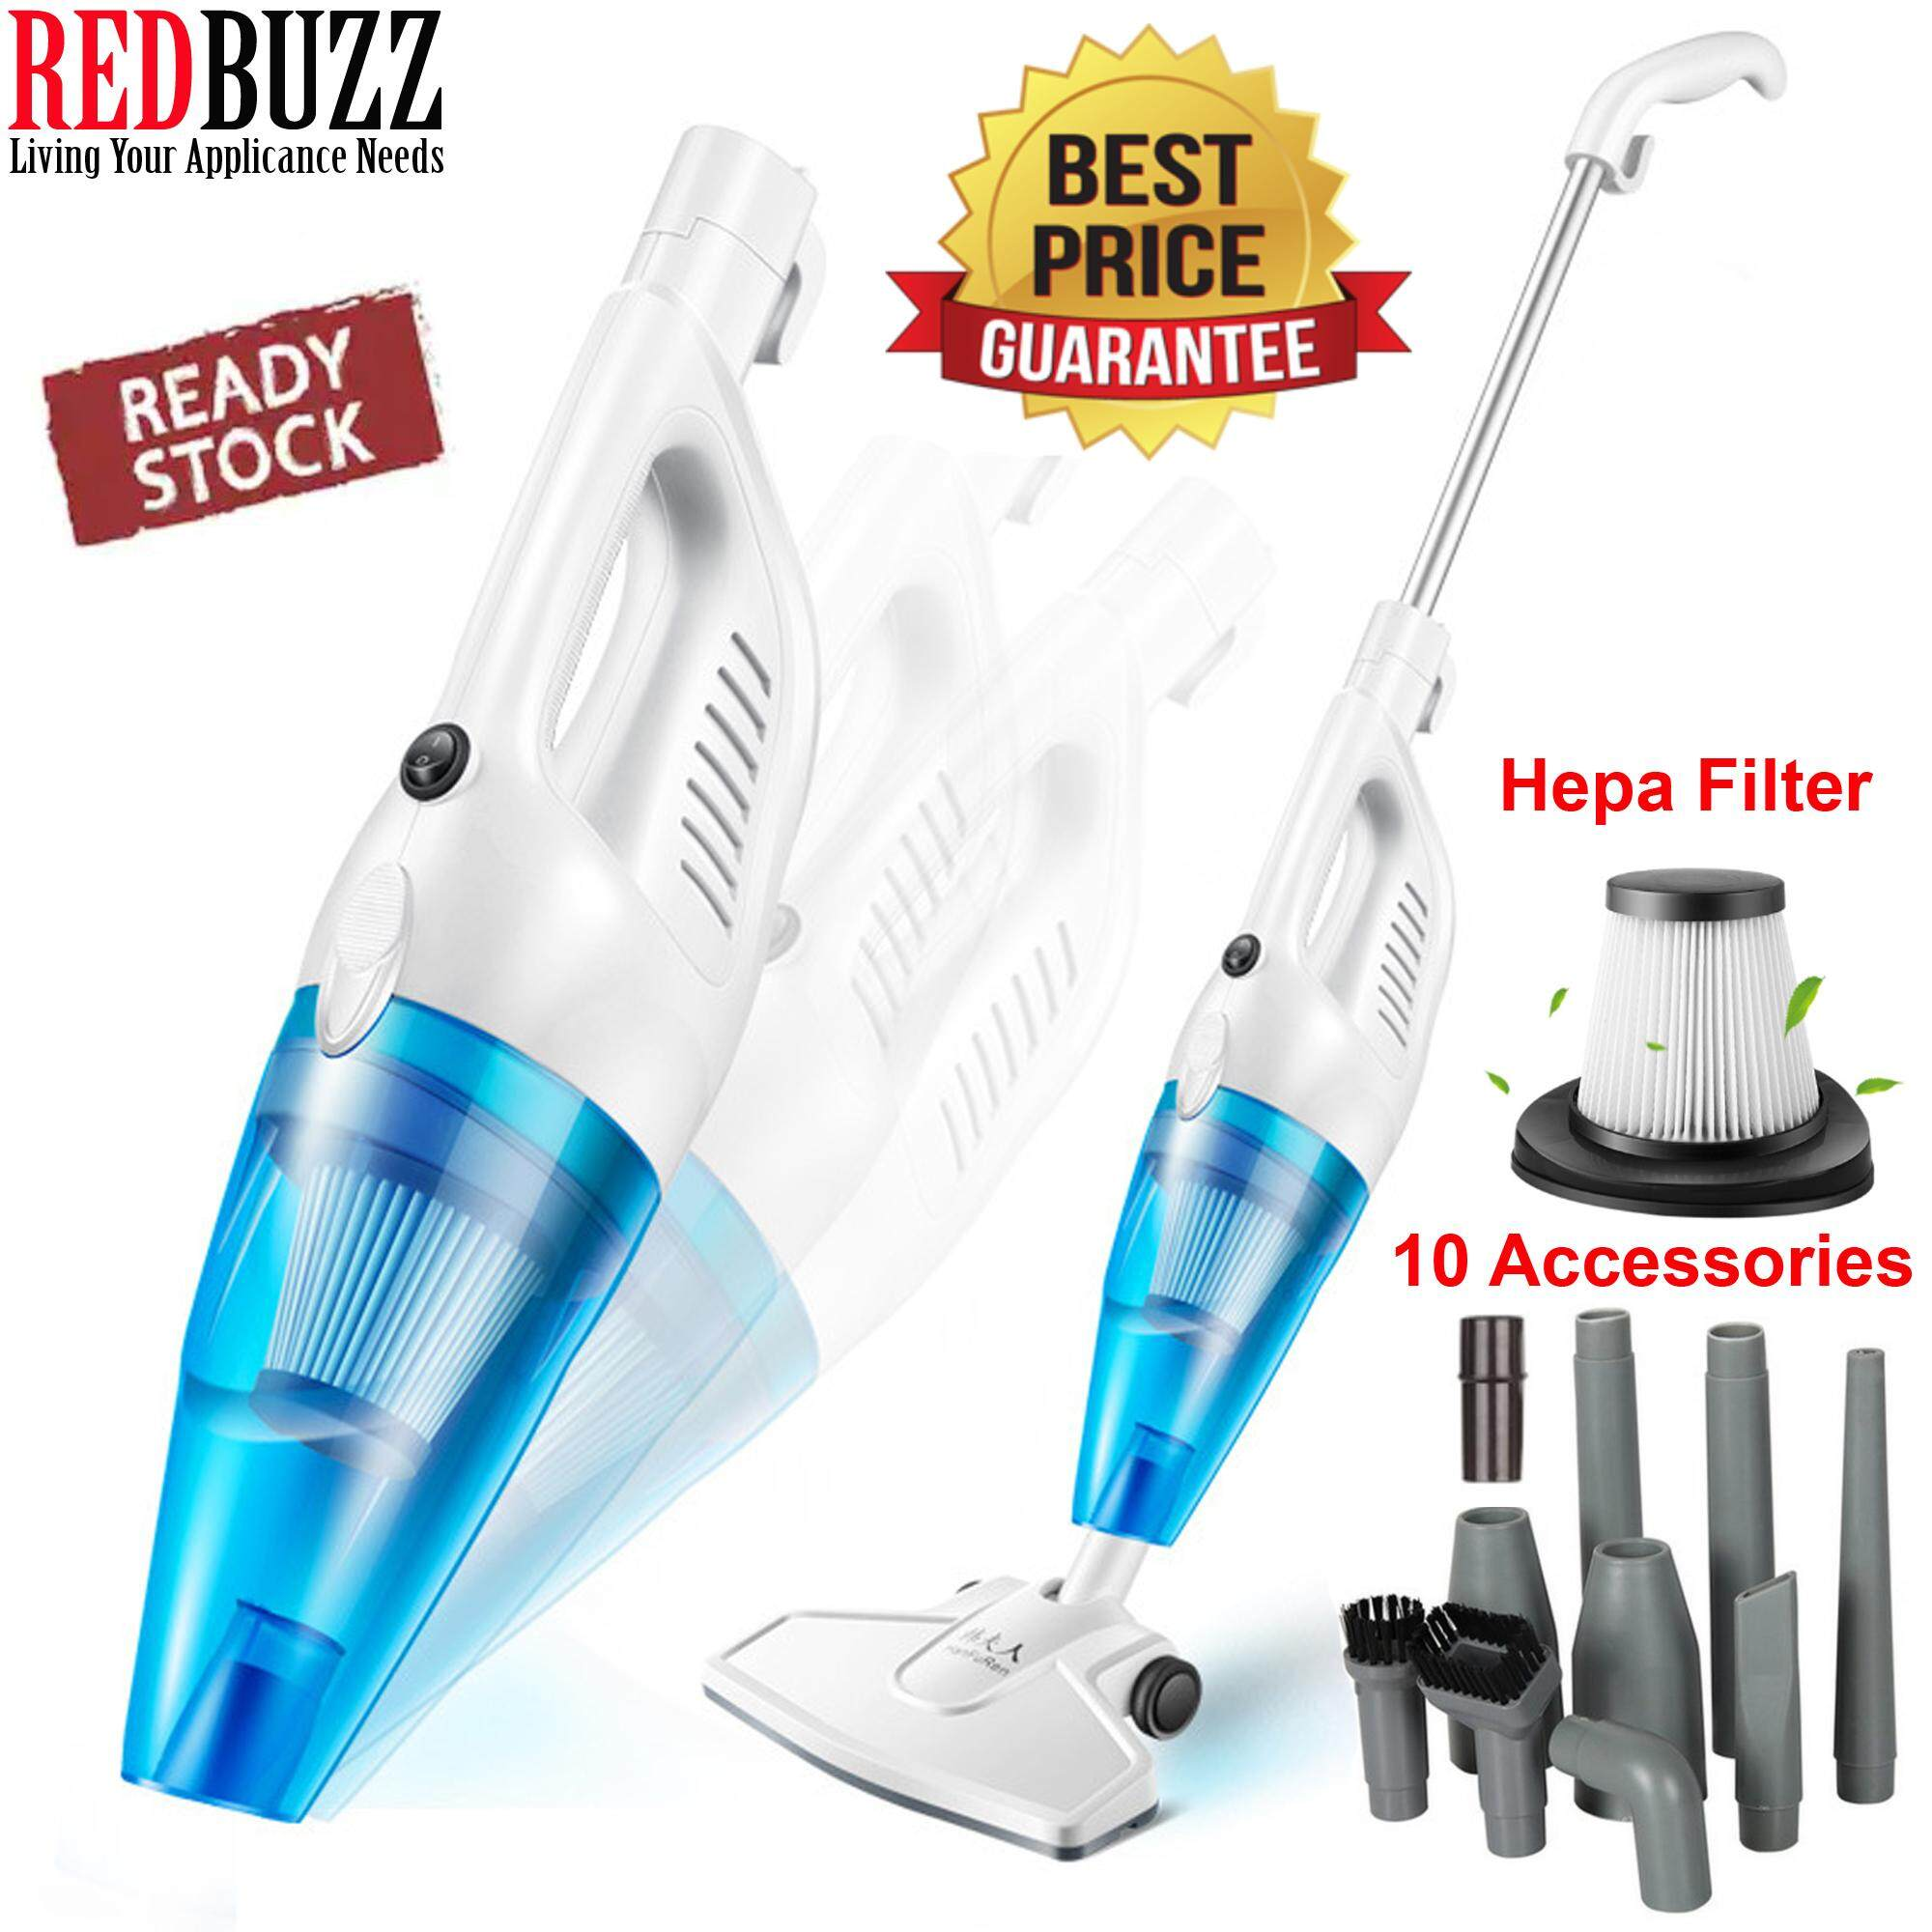 REDBUZZ 2in1 Powerful Suction 650W Portable Handheld Vacuum Cleaner Vacumn Cleaner.